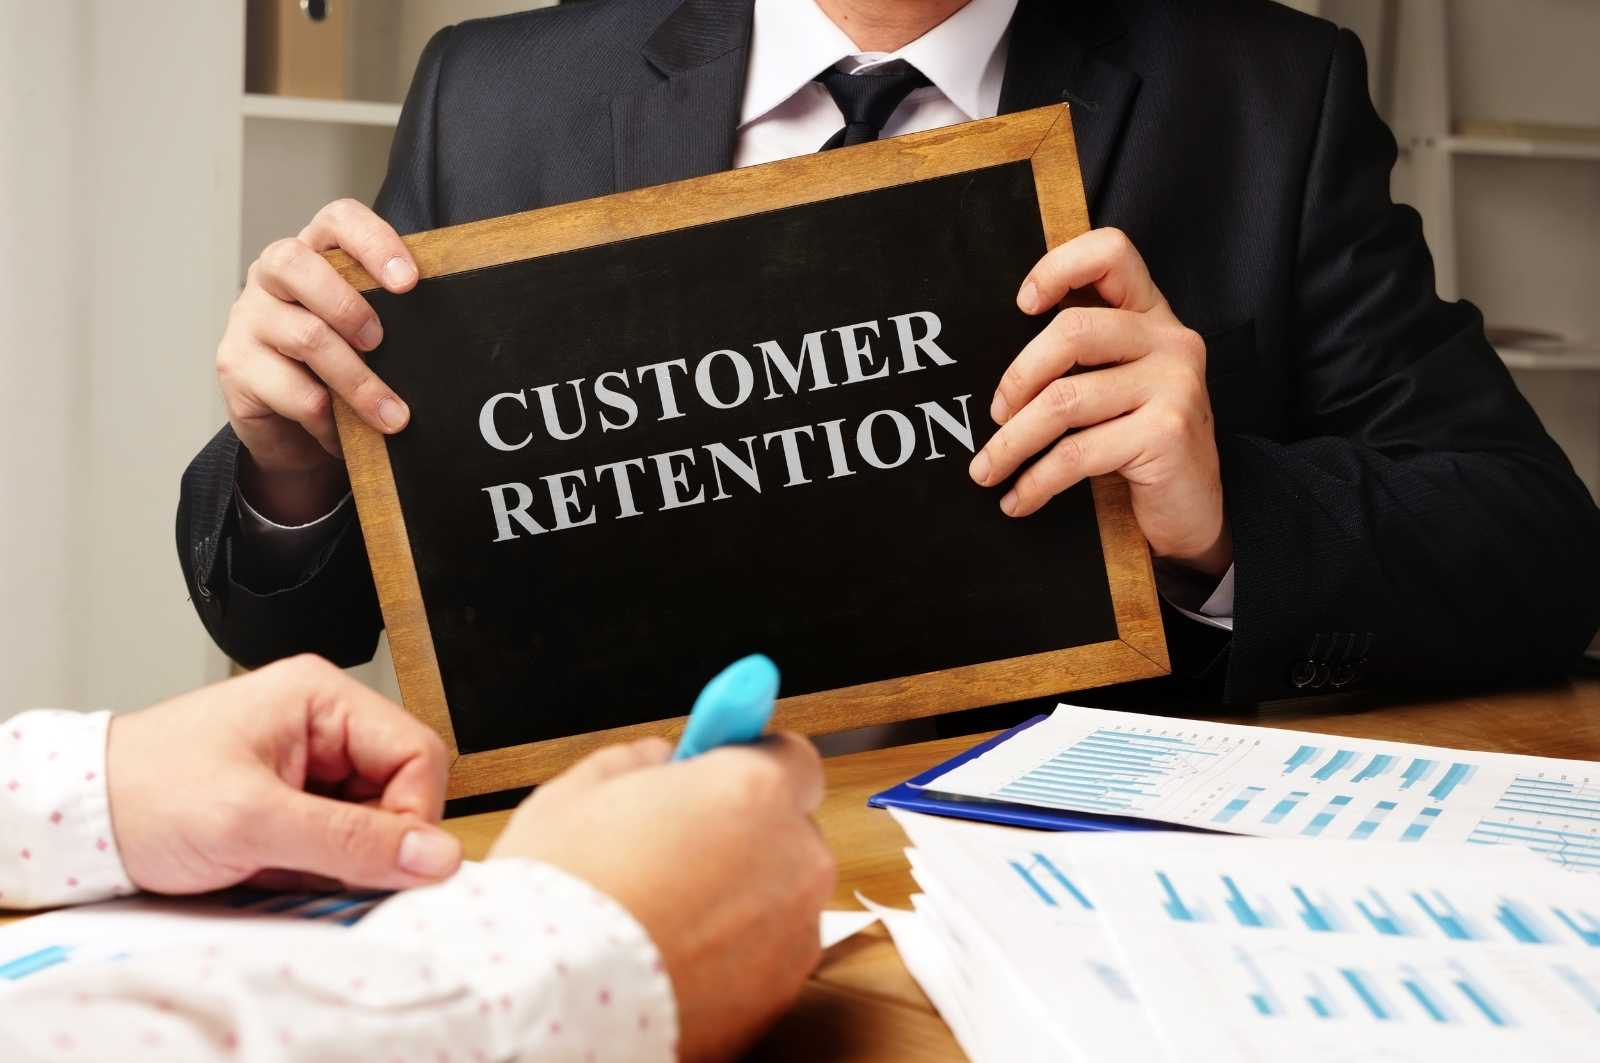 10 Surefire Ways to Keep Customers Coming Back to Your Site